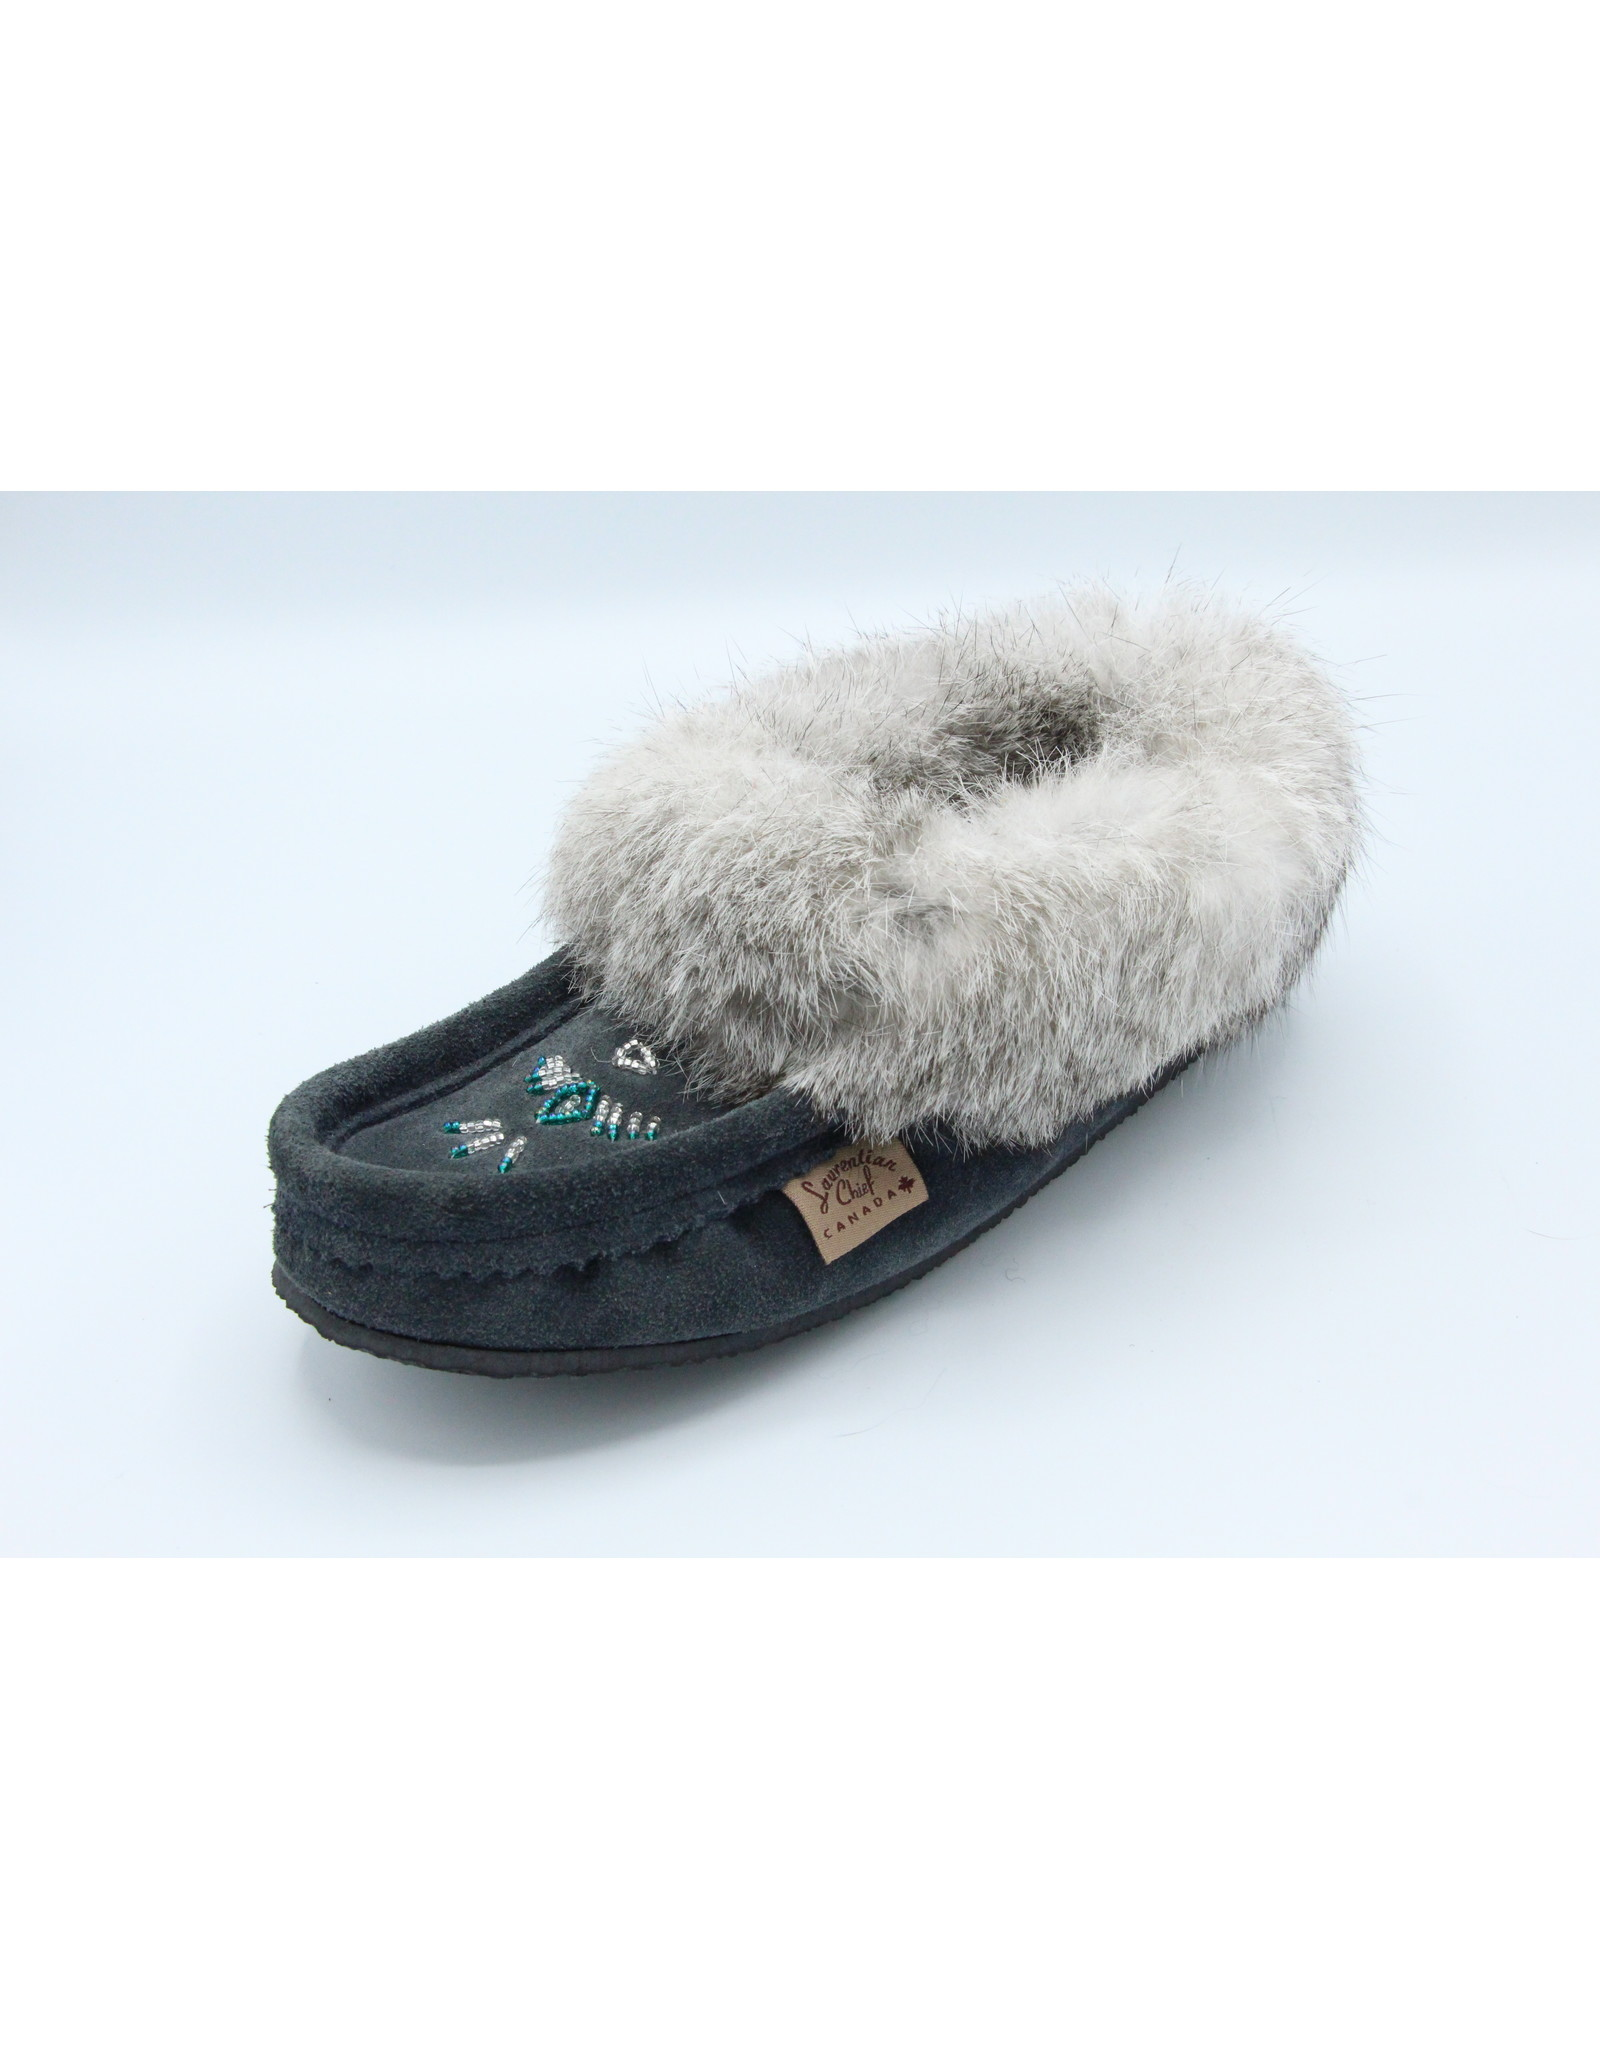 Navy Blue Slippers with Rubber Sole - 12658L